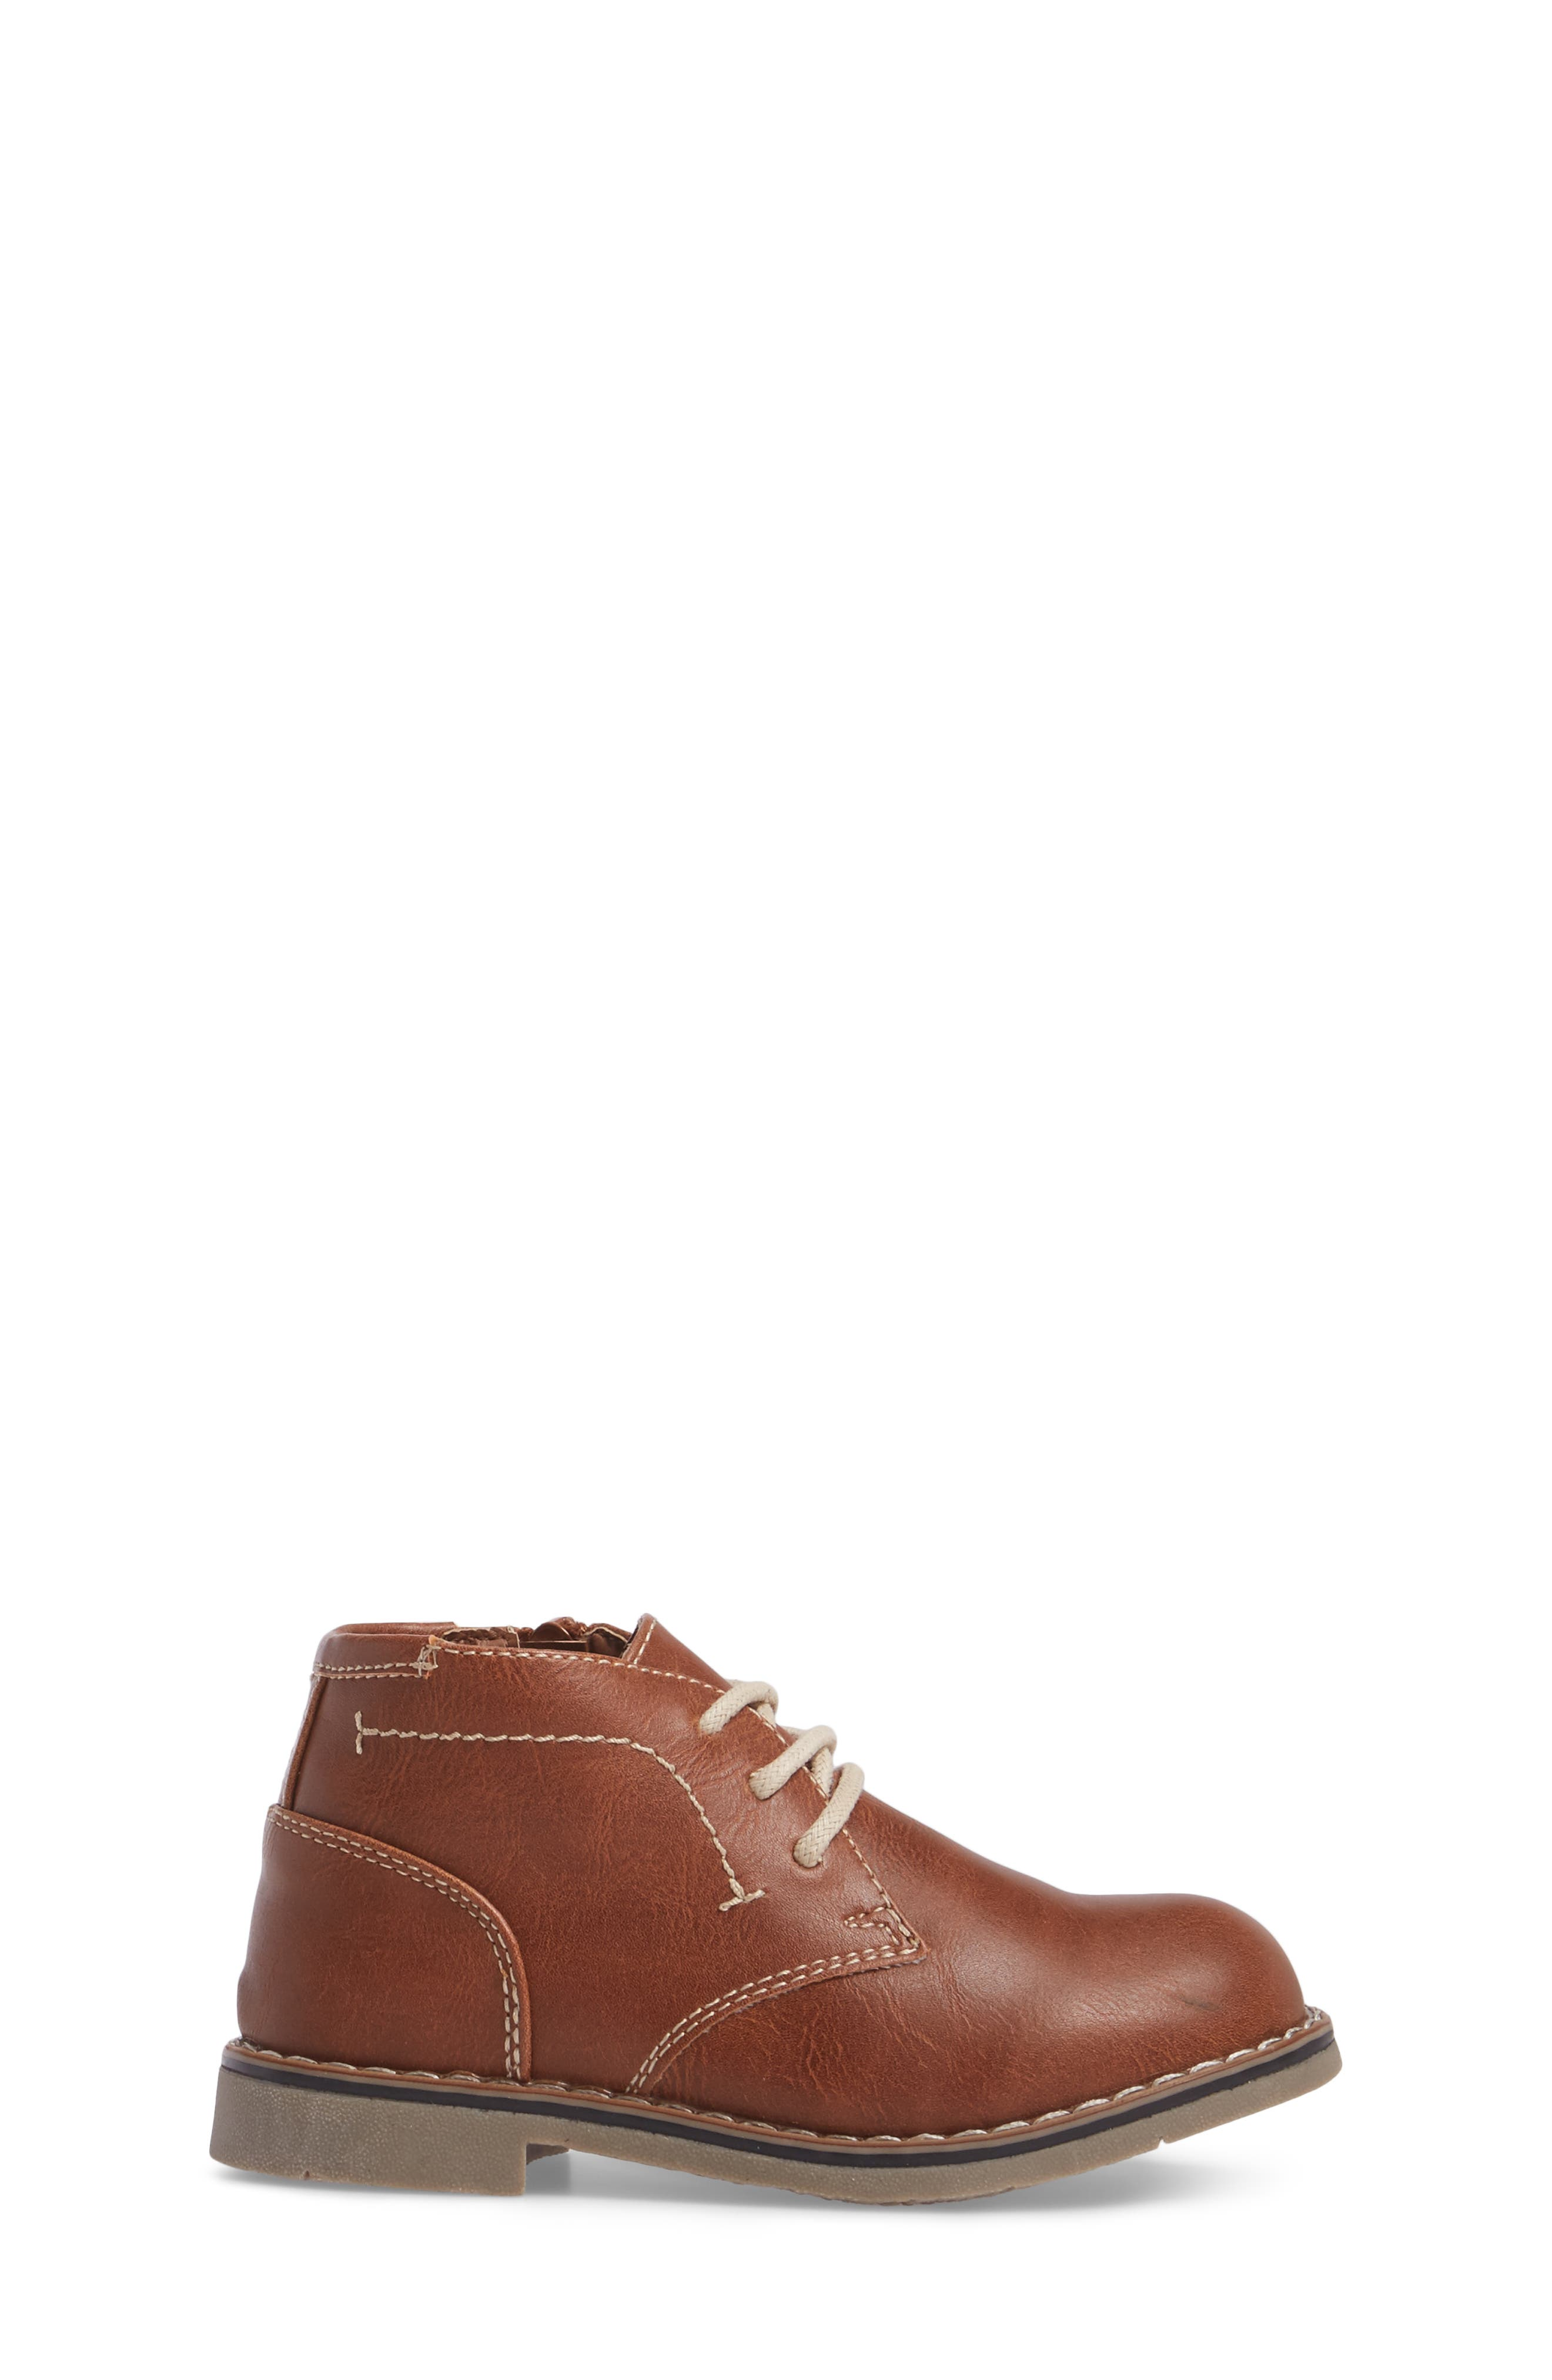 Chukka Boot,                             Alternate thumbnail 3, color,                             Cognac